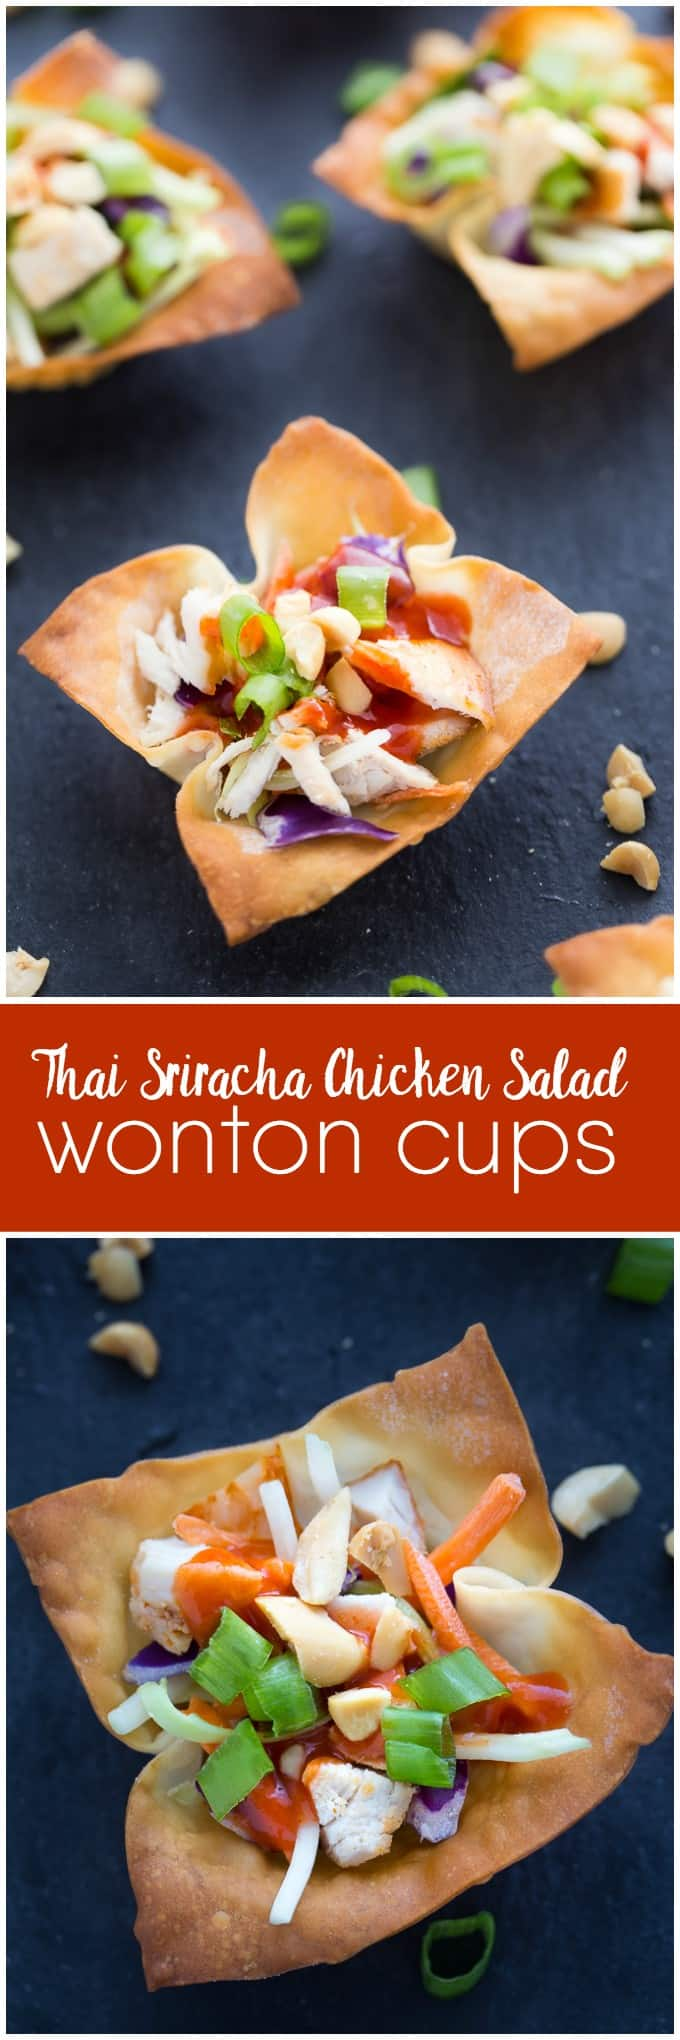 Thai Sriracha Chicken Salad Wonton Cups - Fresh, crunchy and spicy! Serve these yummy summer appetizers at your next BBQ.